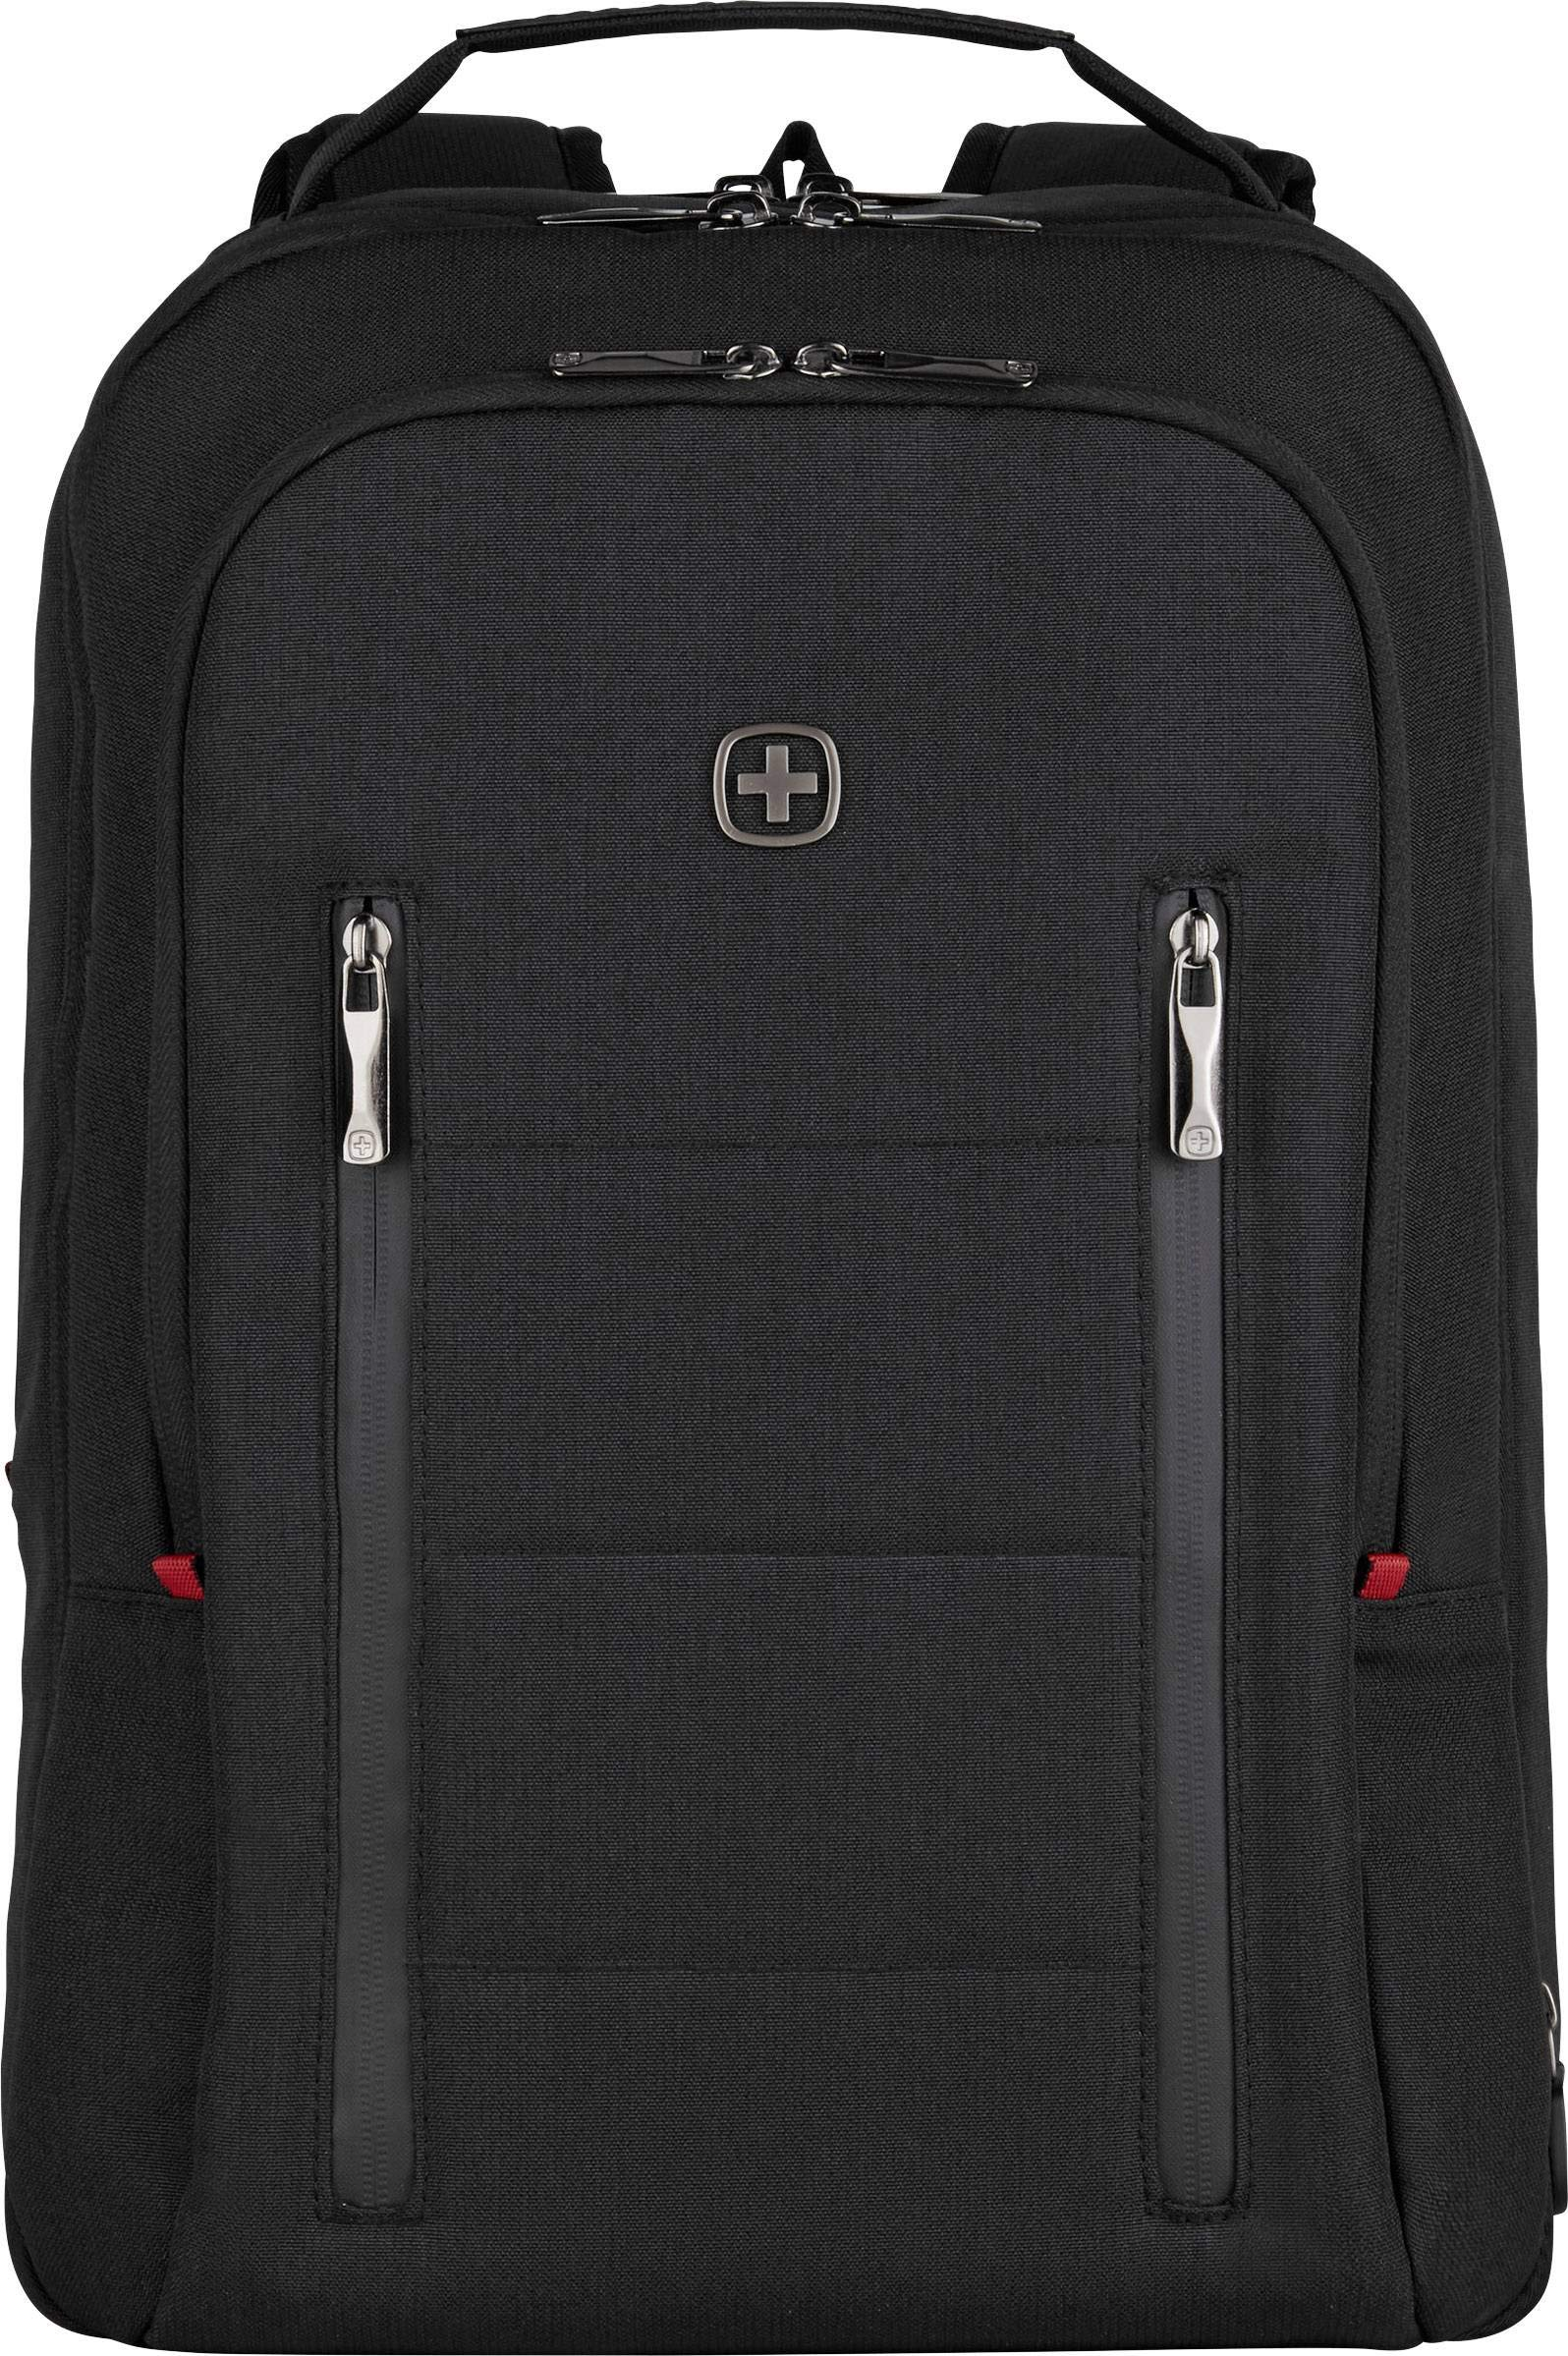 Wenger 606490 City Traveler 16″ Travel Laptop Backpack, Padded Laptop Compartment with Expandable Overnight Packing Compartment in Black {24 litres}